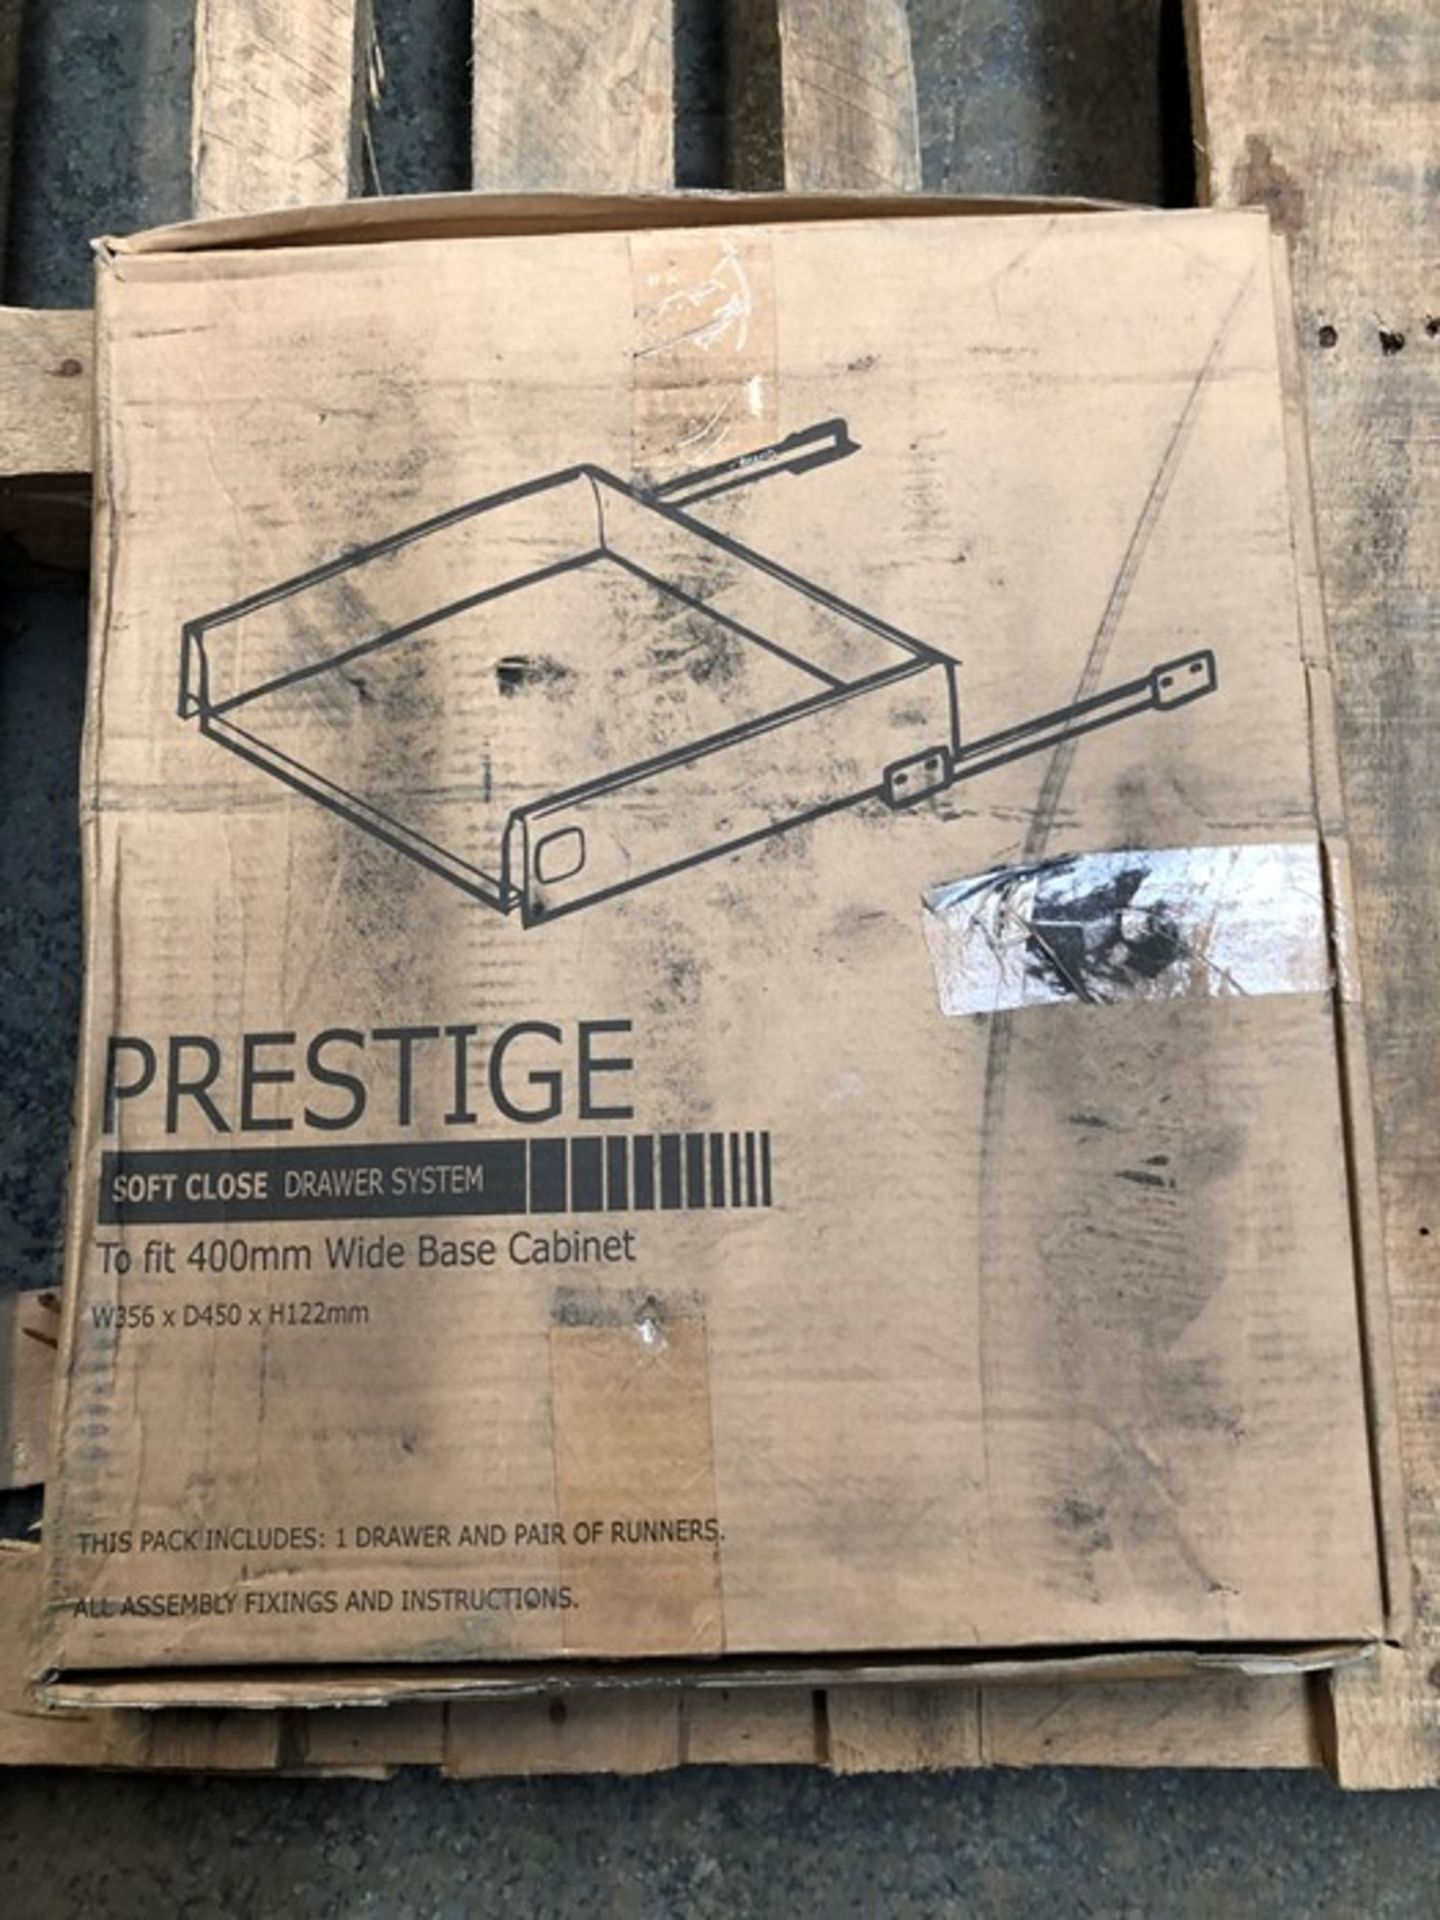 Lot 25 - 1 BOXED PRESTIGE SOFT CLOSE DRAWER SYSTEM / TO FIT 400MM WIDE BASE CABINET (VIEWING HIGHLY